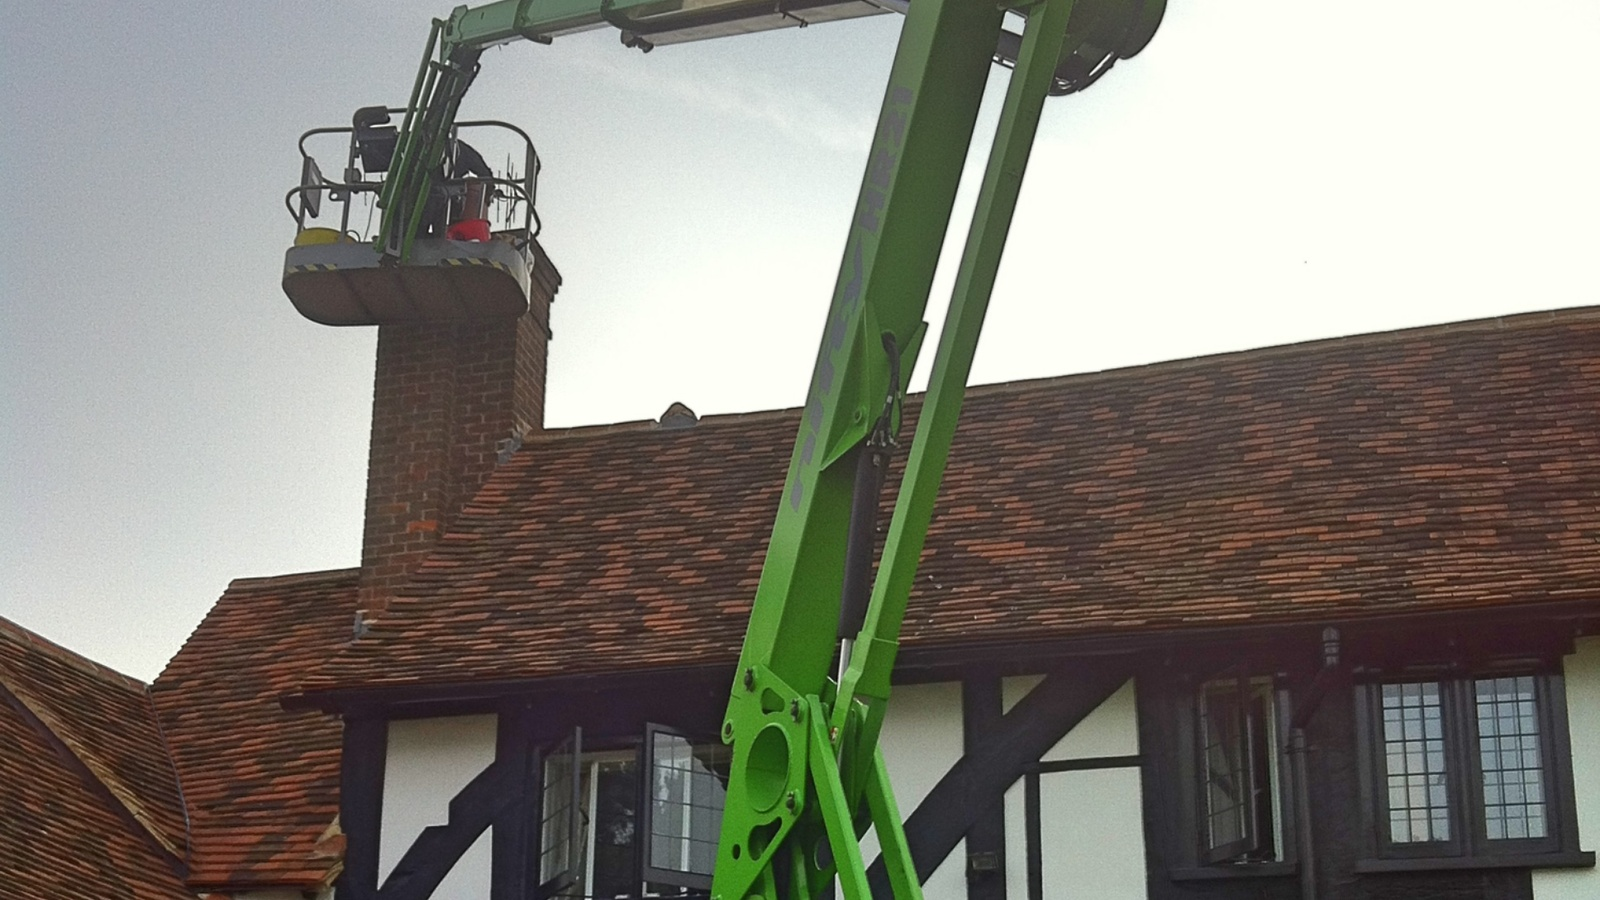 Awkward chimneys or fragile roofs may need specialist access equipment